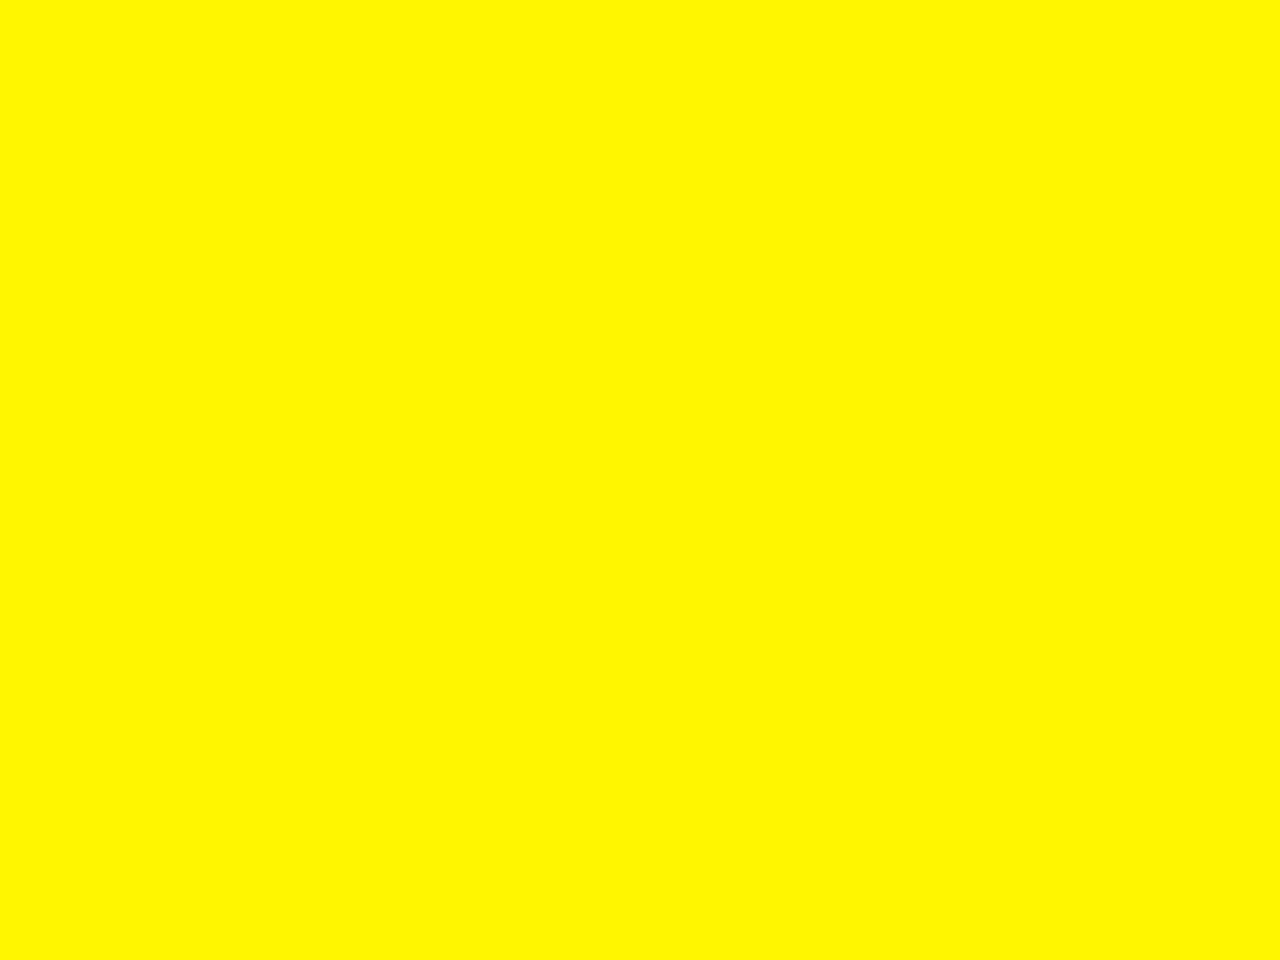 1280x960 Cadmium Yellow Solid Color Background